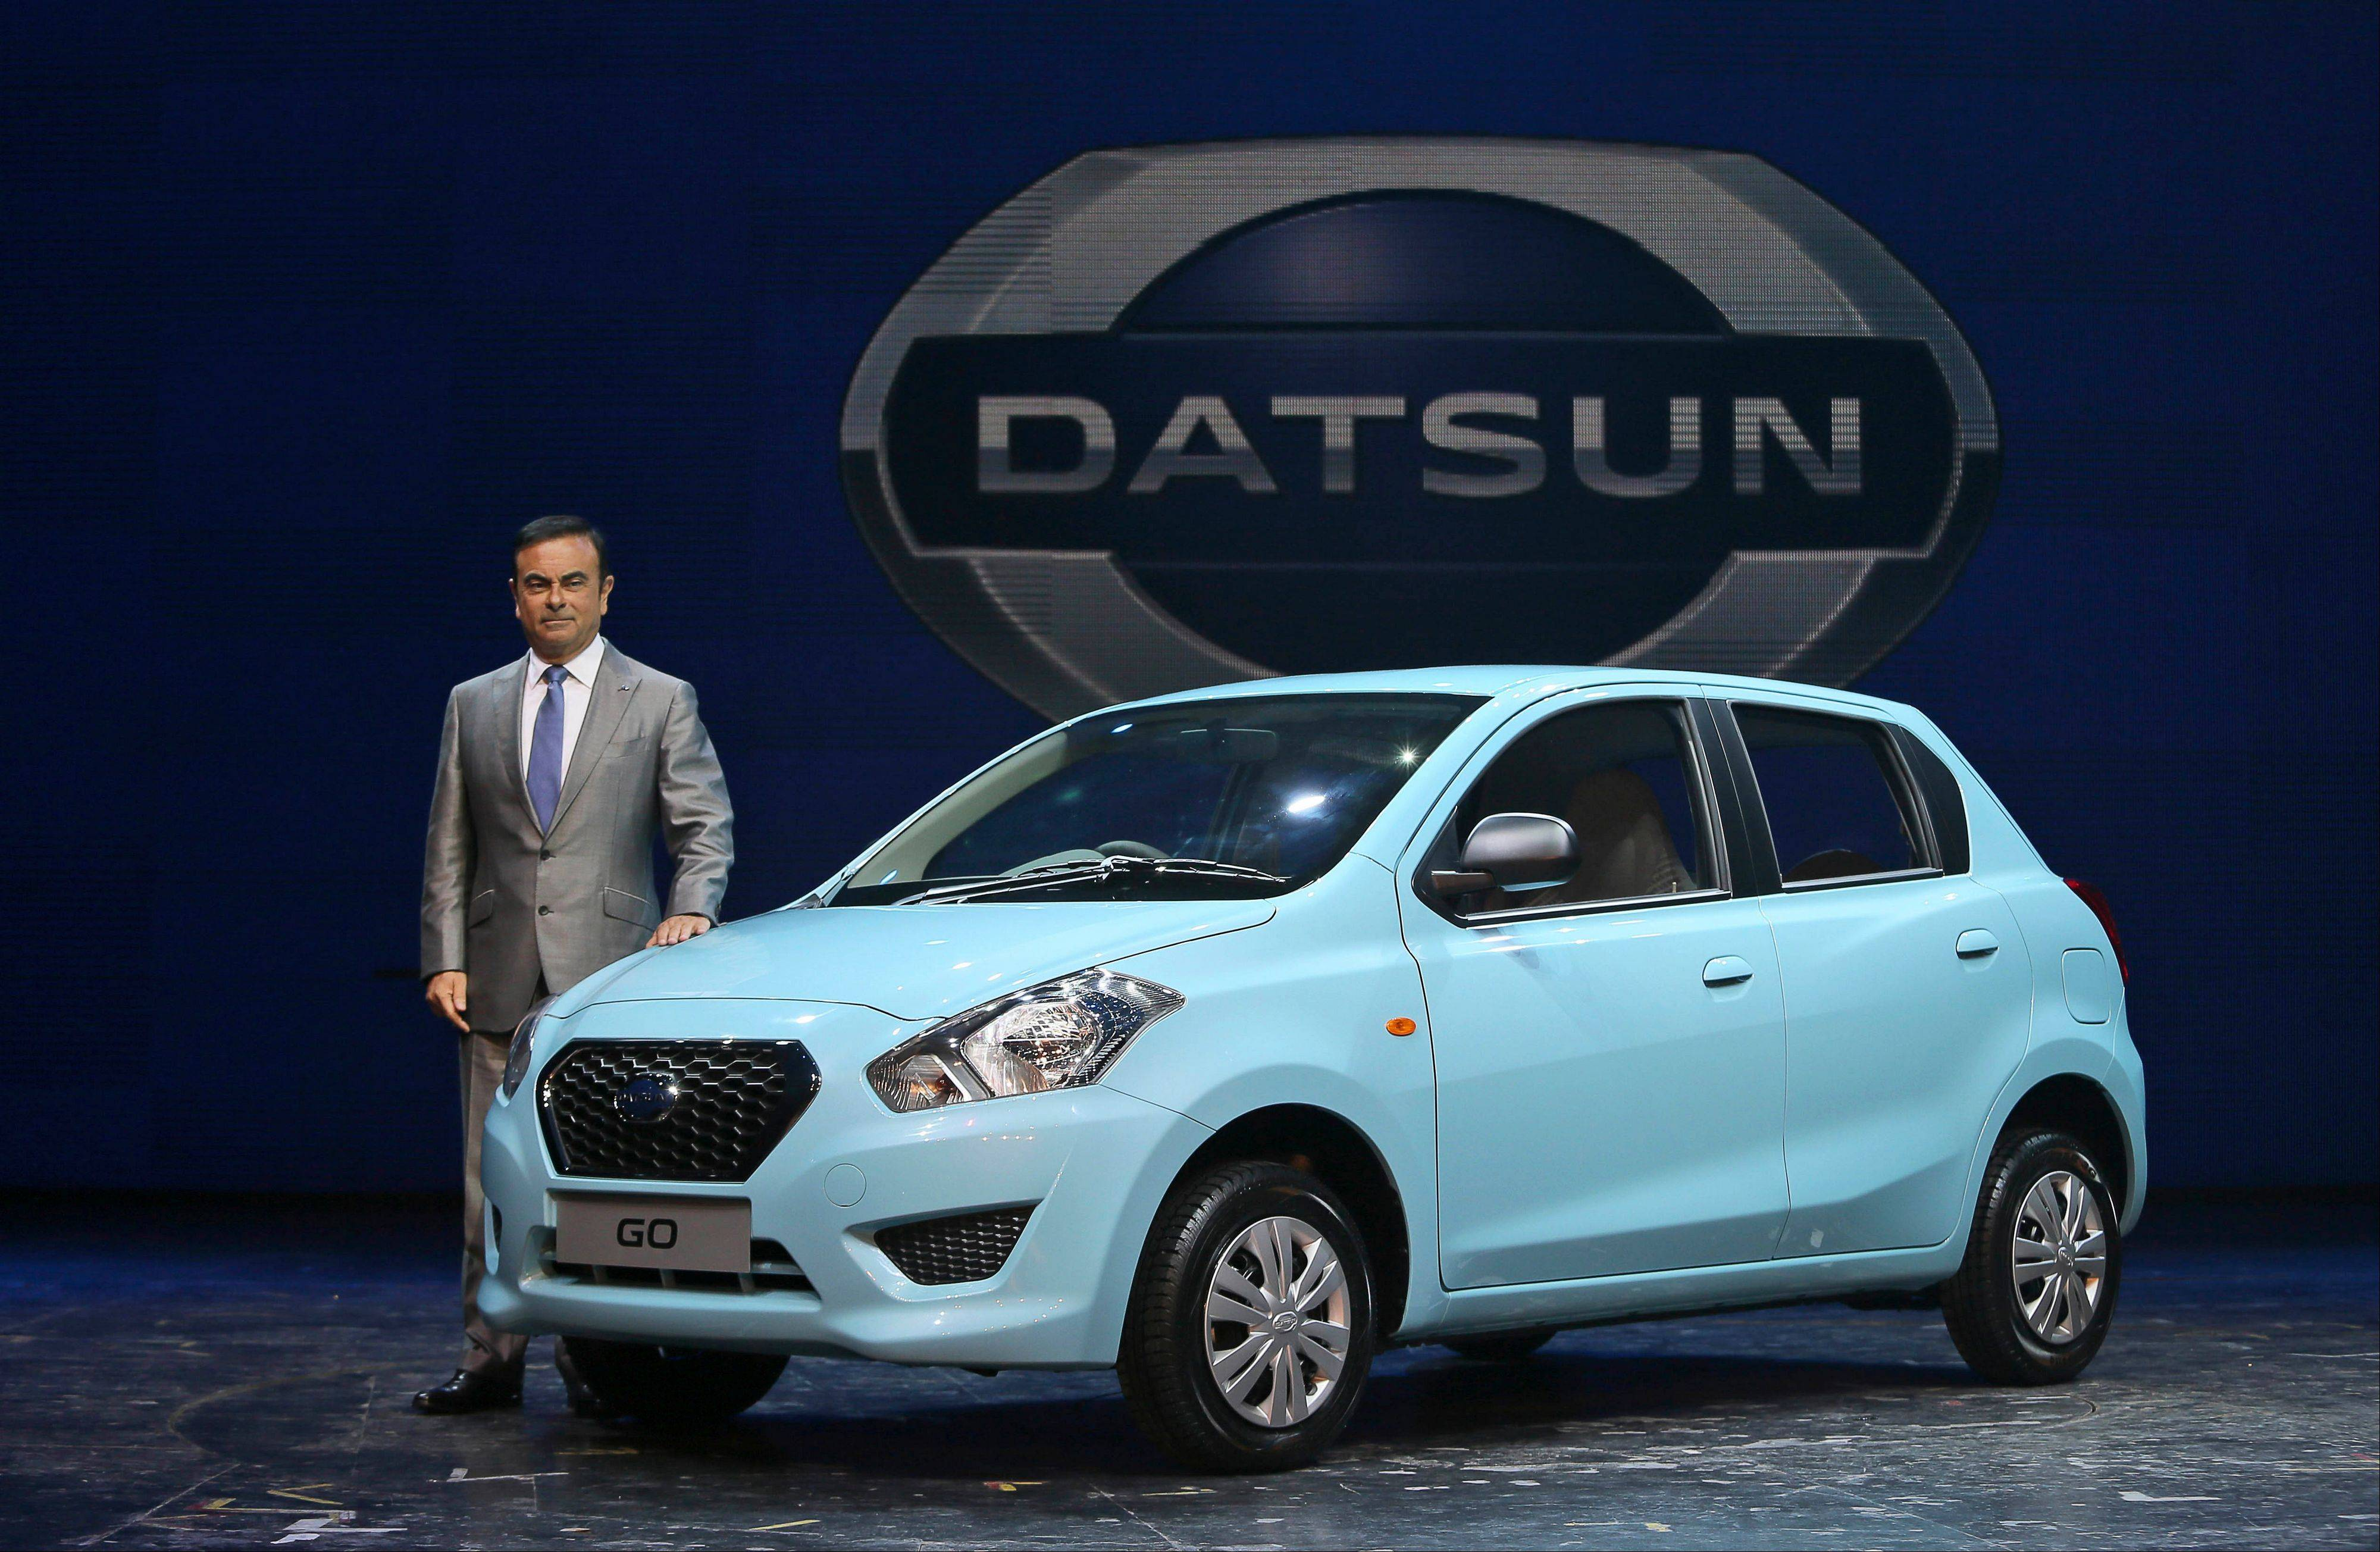 Nissan Motor Co. President and CEO Carlos Ghosn with the Datsun Go Monday during its global launch in New Delhi, India. Nissan has introduced the first new Datsun model in more than three decades in the Indian capital. The company hopes bringing back the brand that built its U.S. business will fuel growth in emerging markets with a new generation of car buyers. The re-imagined Datsun � a five-seat hatchback � will go on sale in India next year for about $6,670.